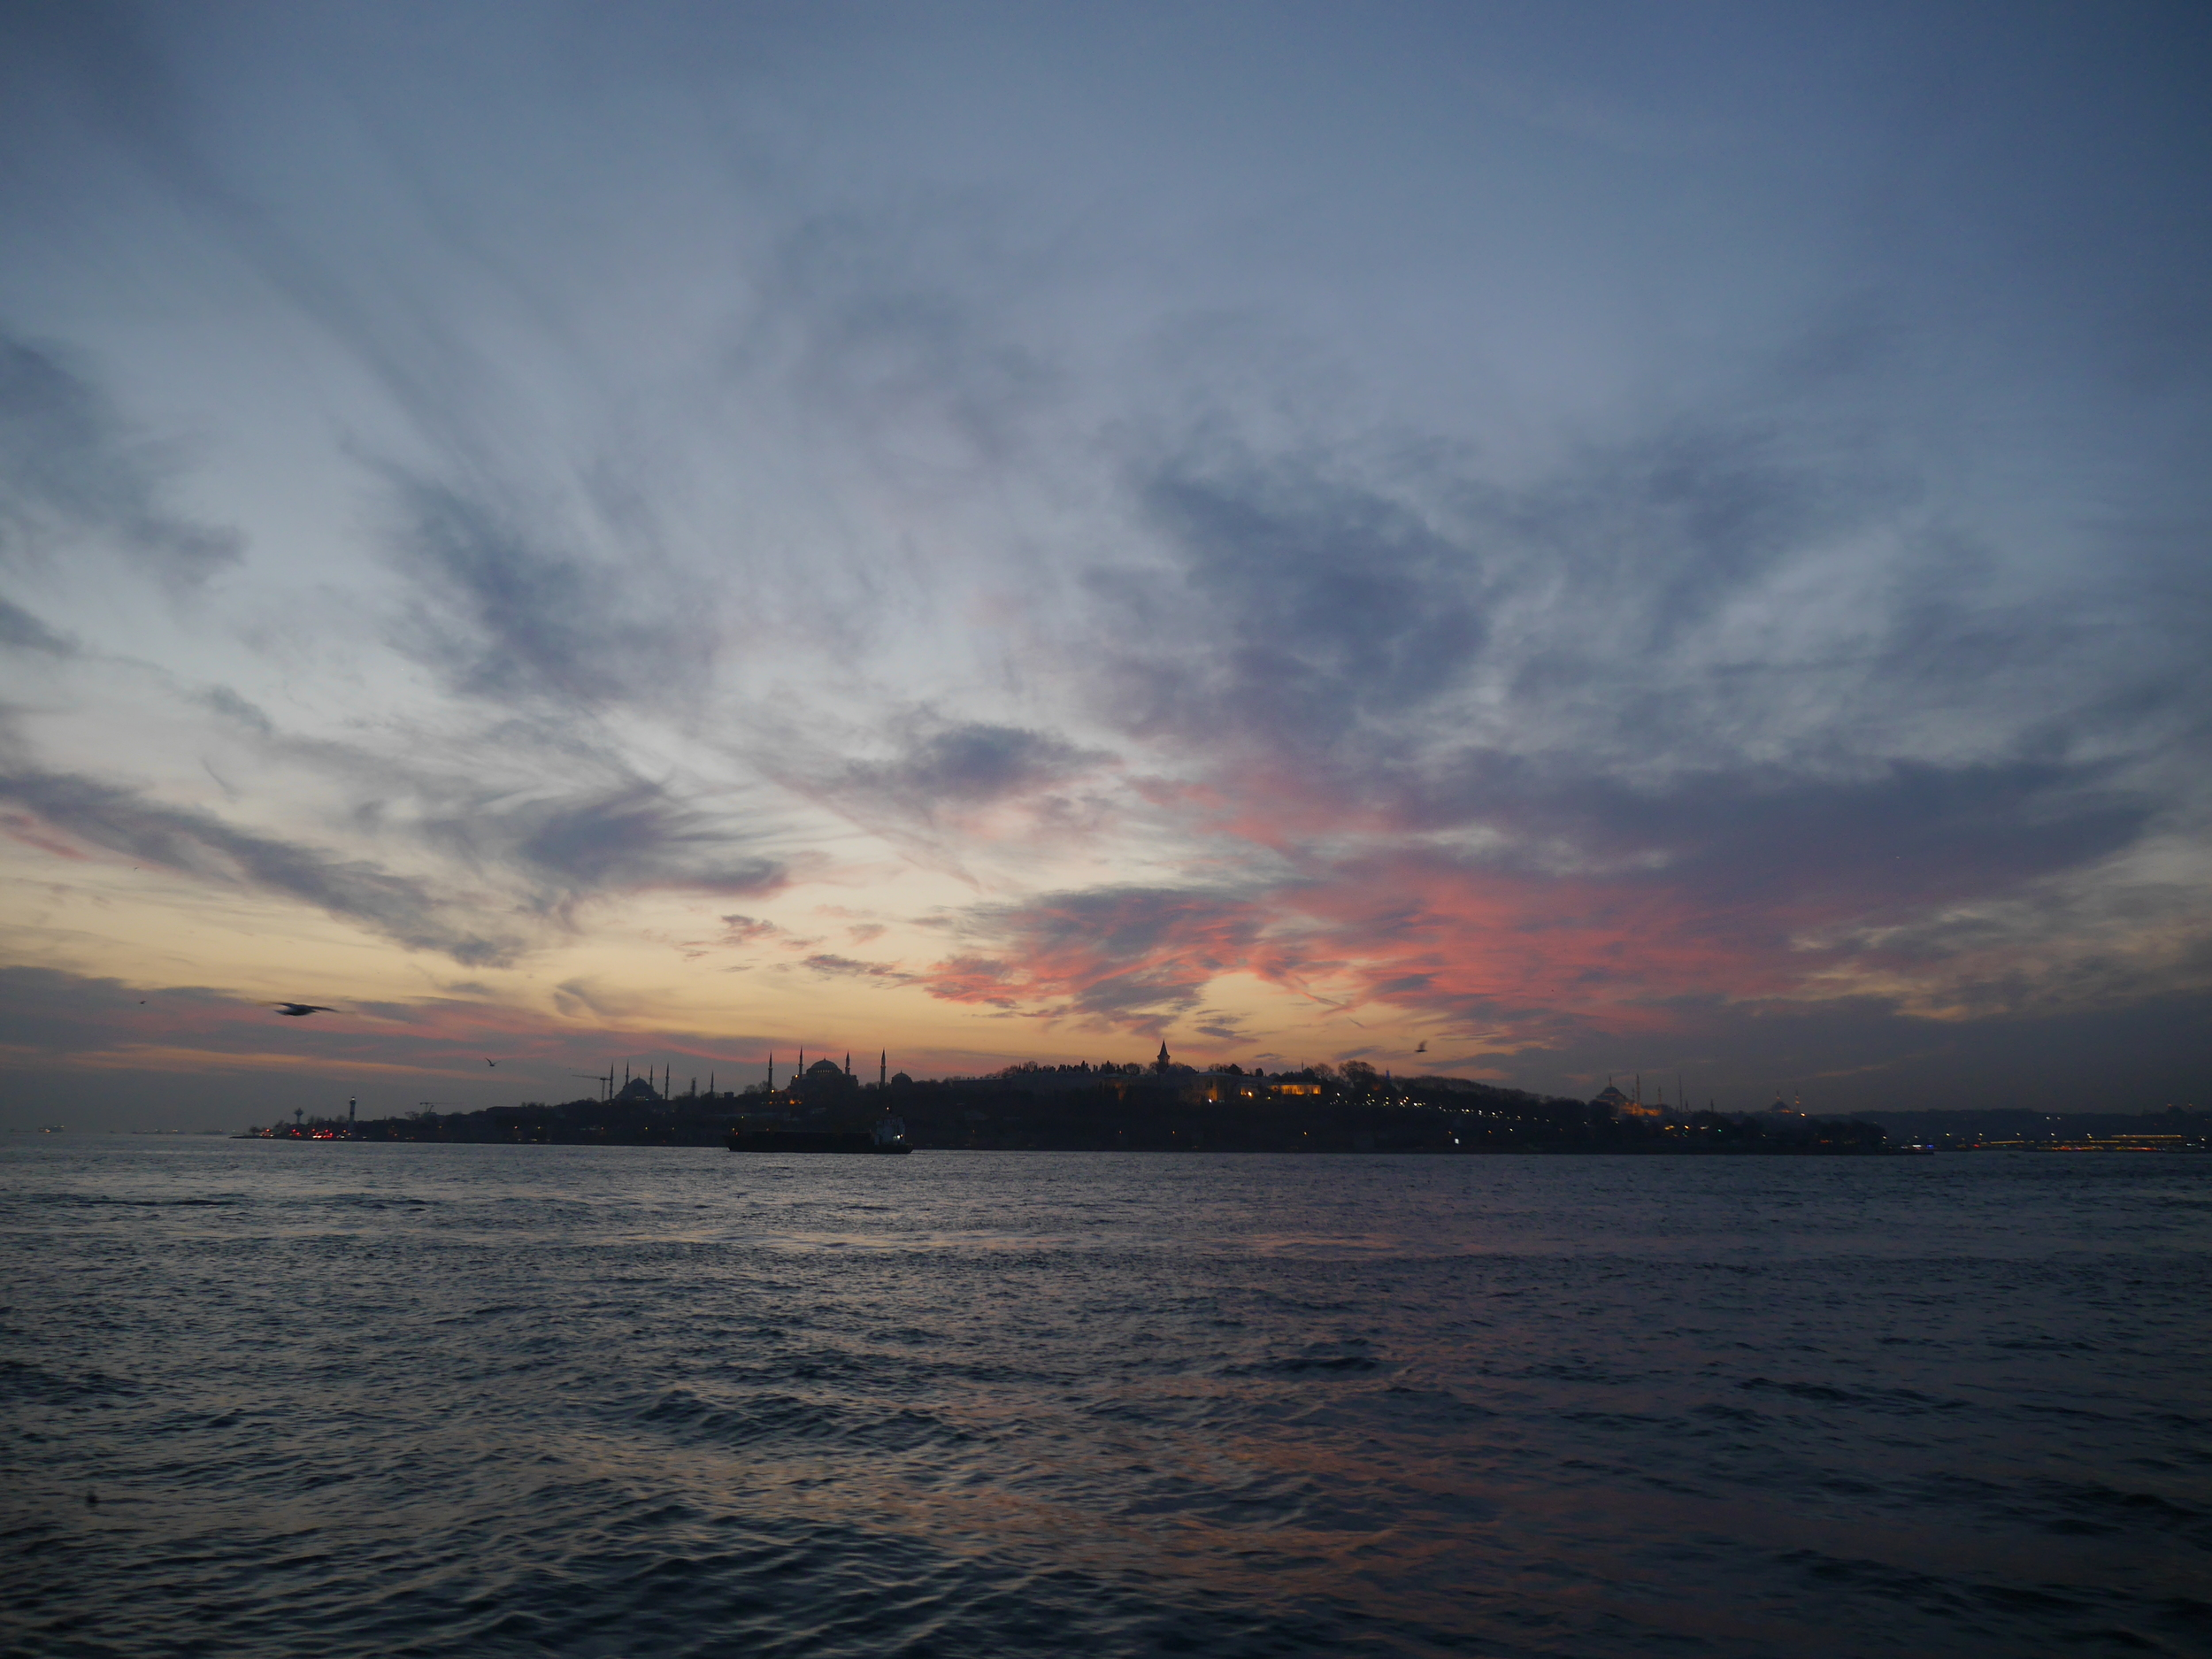 Sunset over the European side of Istanbul.